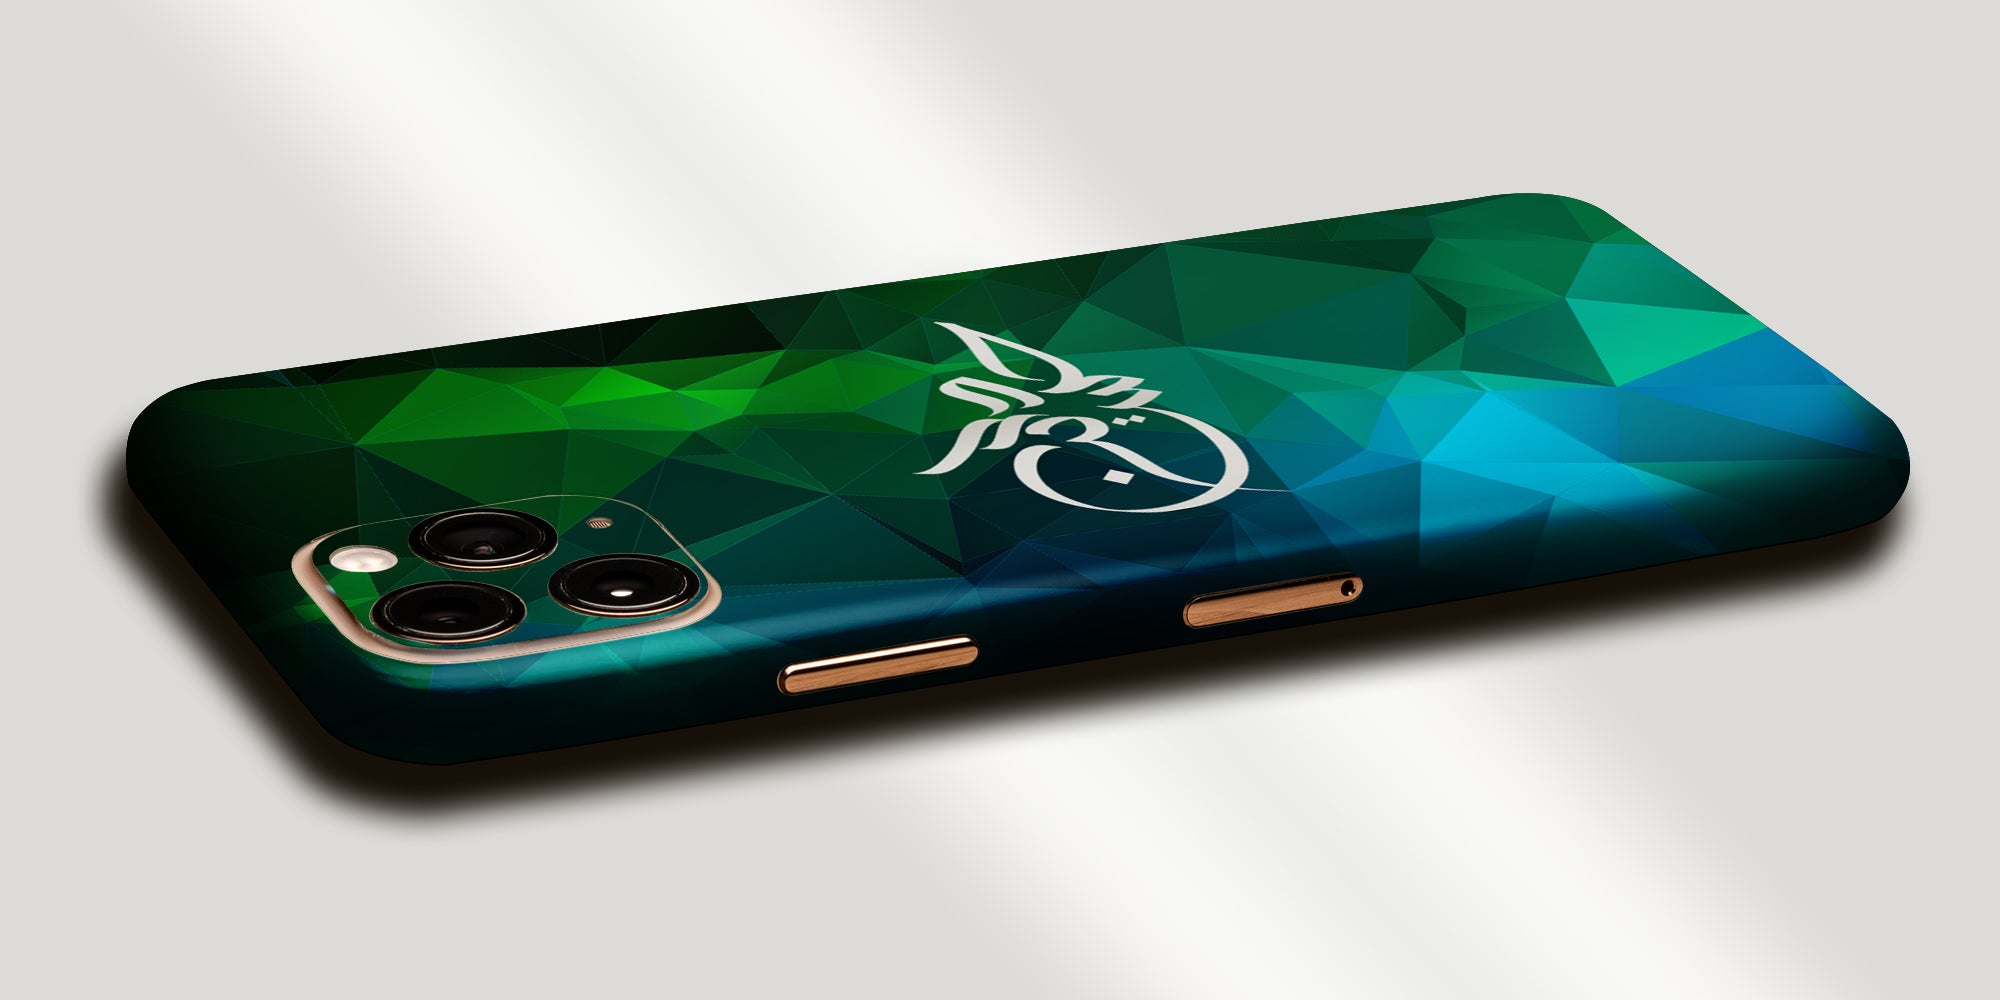 Geometric Design Decal Skin With Personalised Arabic Name Phone Wrap - Green